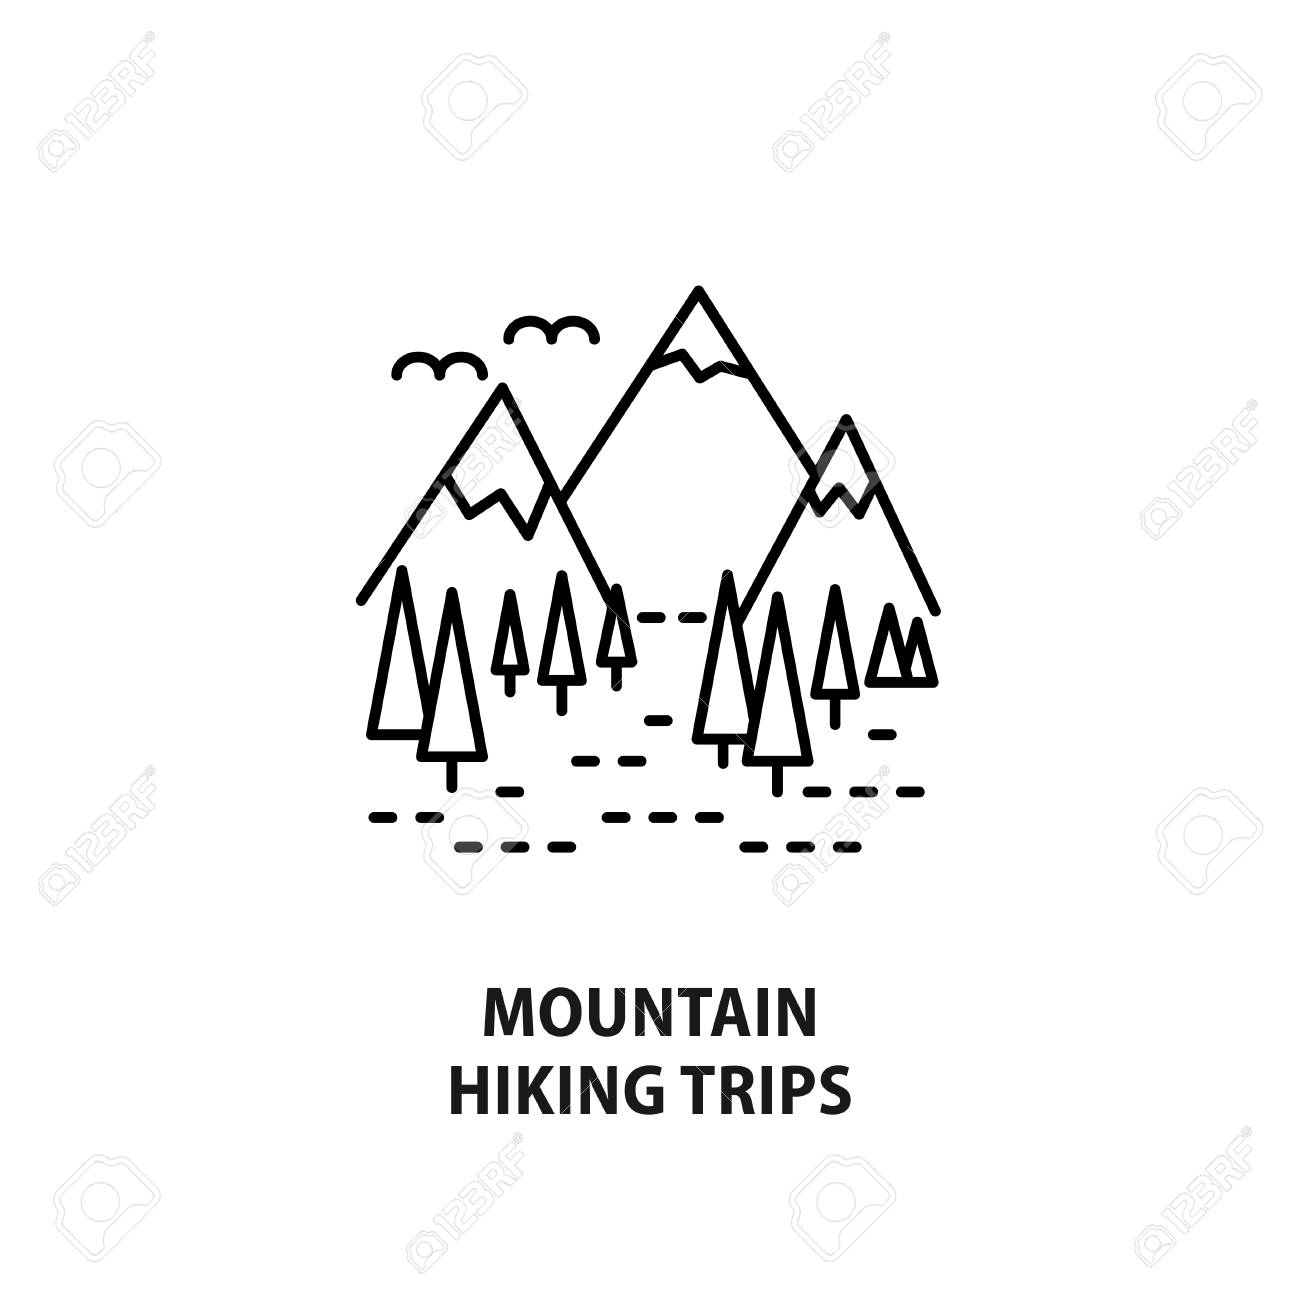 Vector logo for mountain hiking trips isolated on white design vector vector logo for mountain hiking trips isolated on white design concept for travel agency outdoor activity in line style ccuart Choice Image